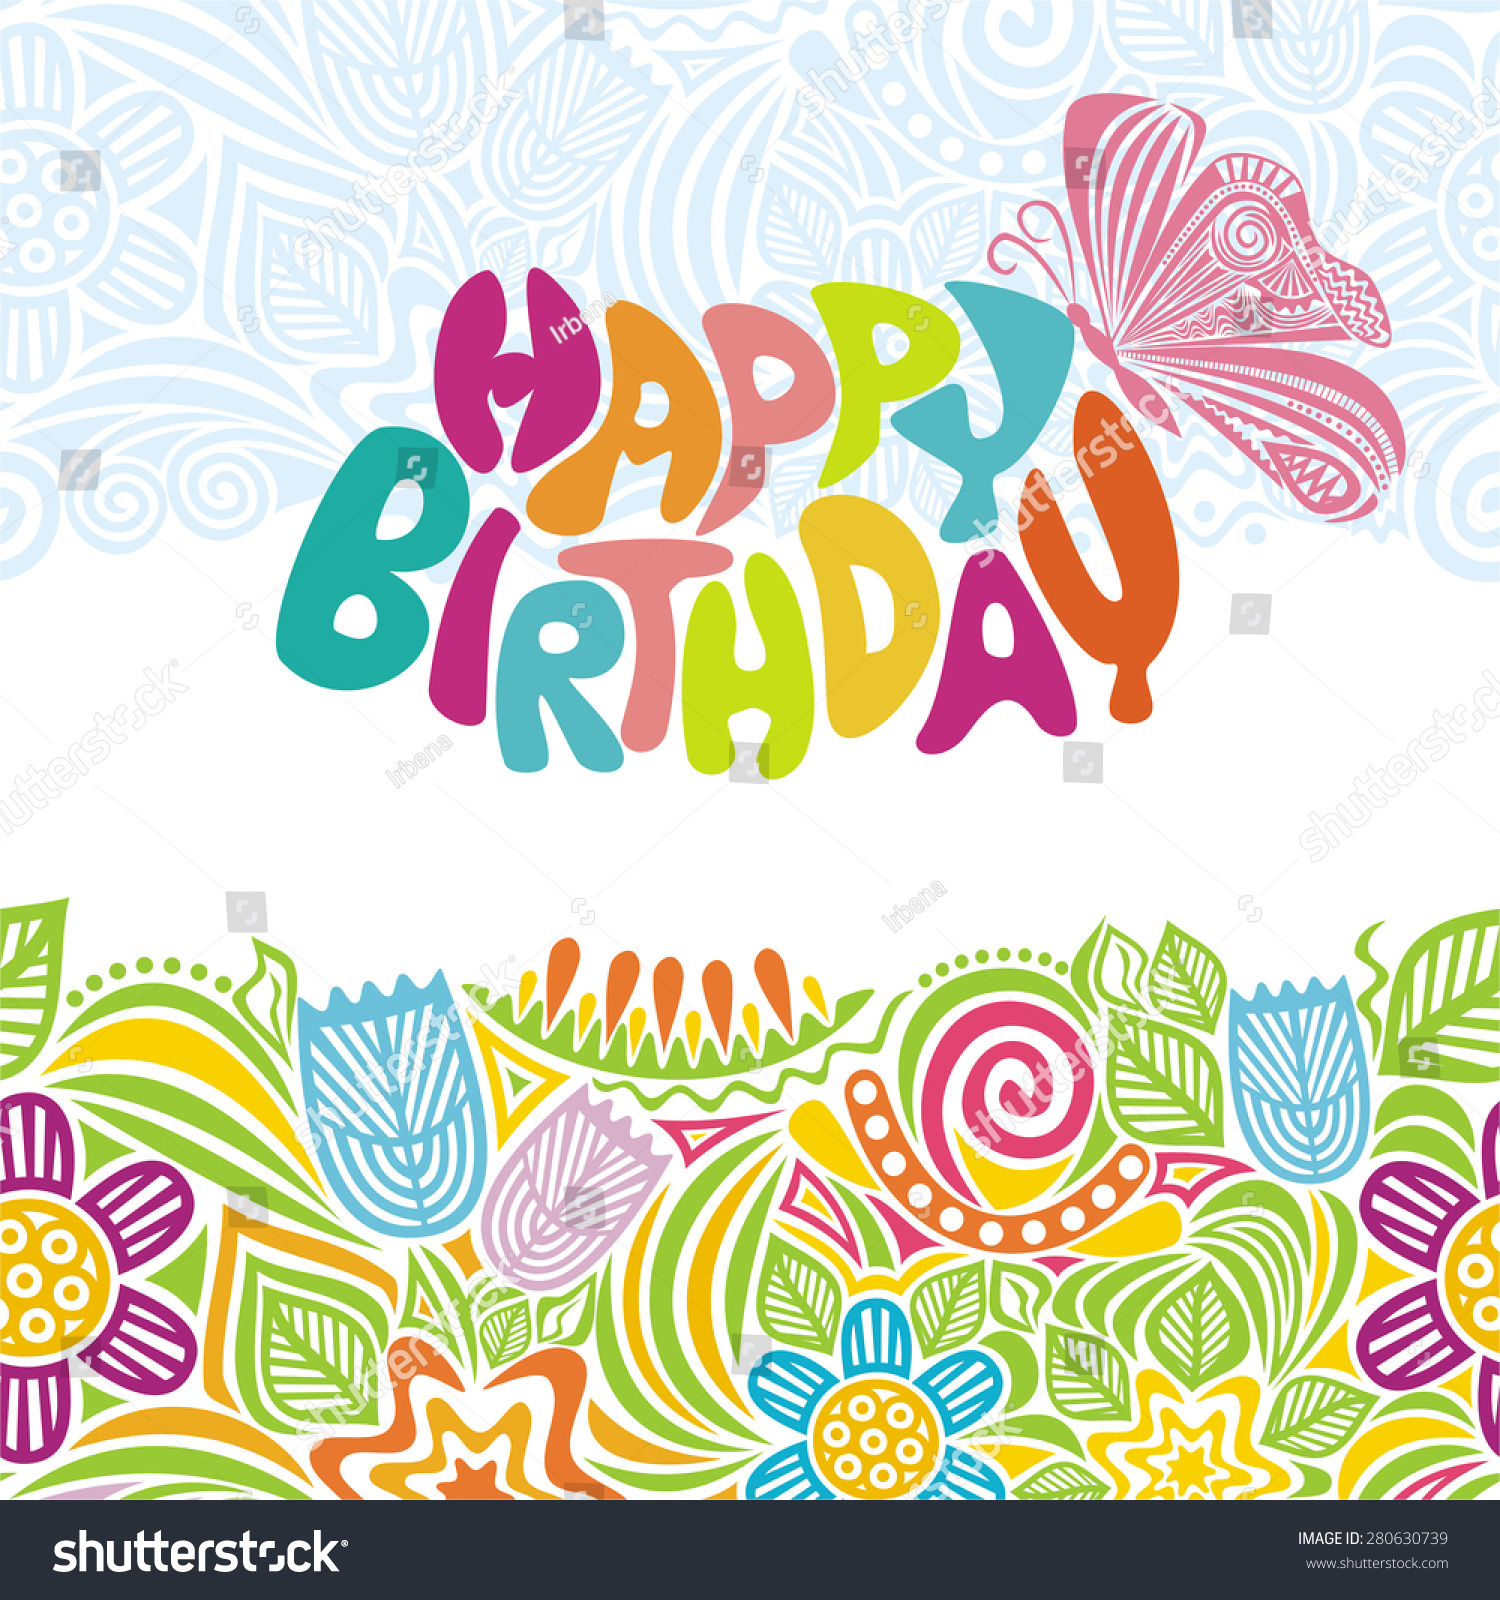 Happy Birthday Greeting Card Beautiful Nature Vector – Nature Birthday Card